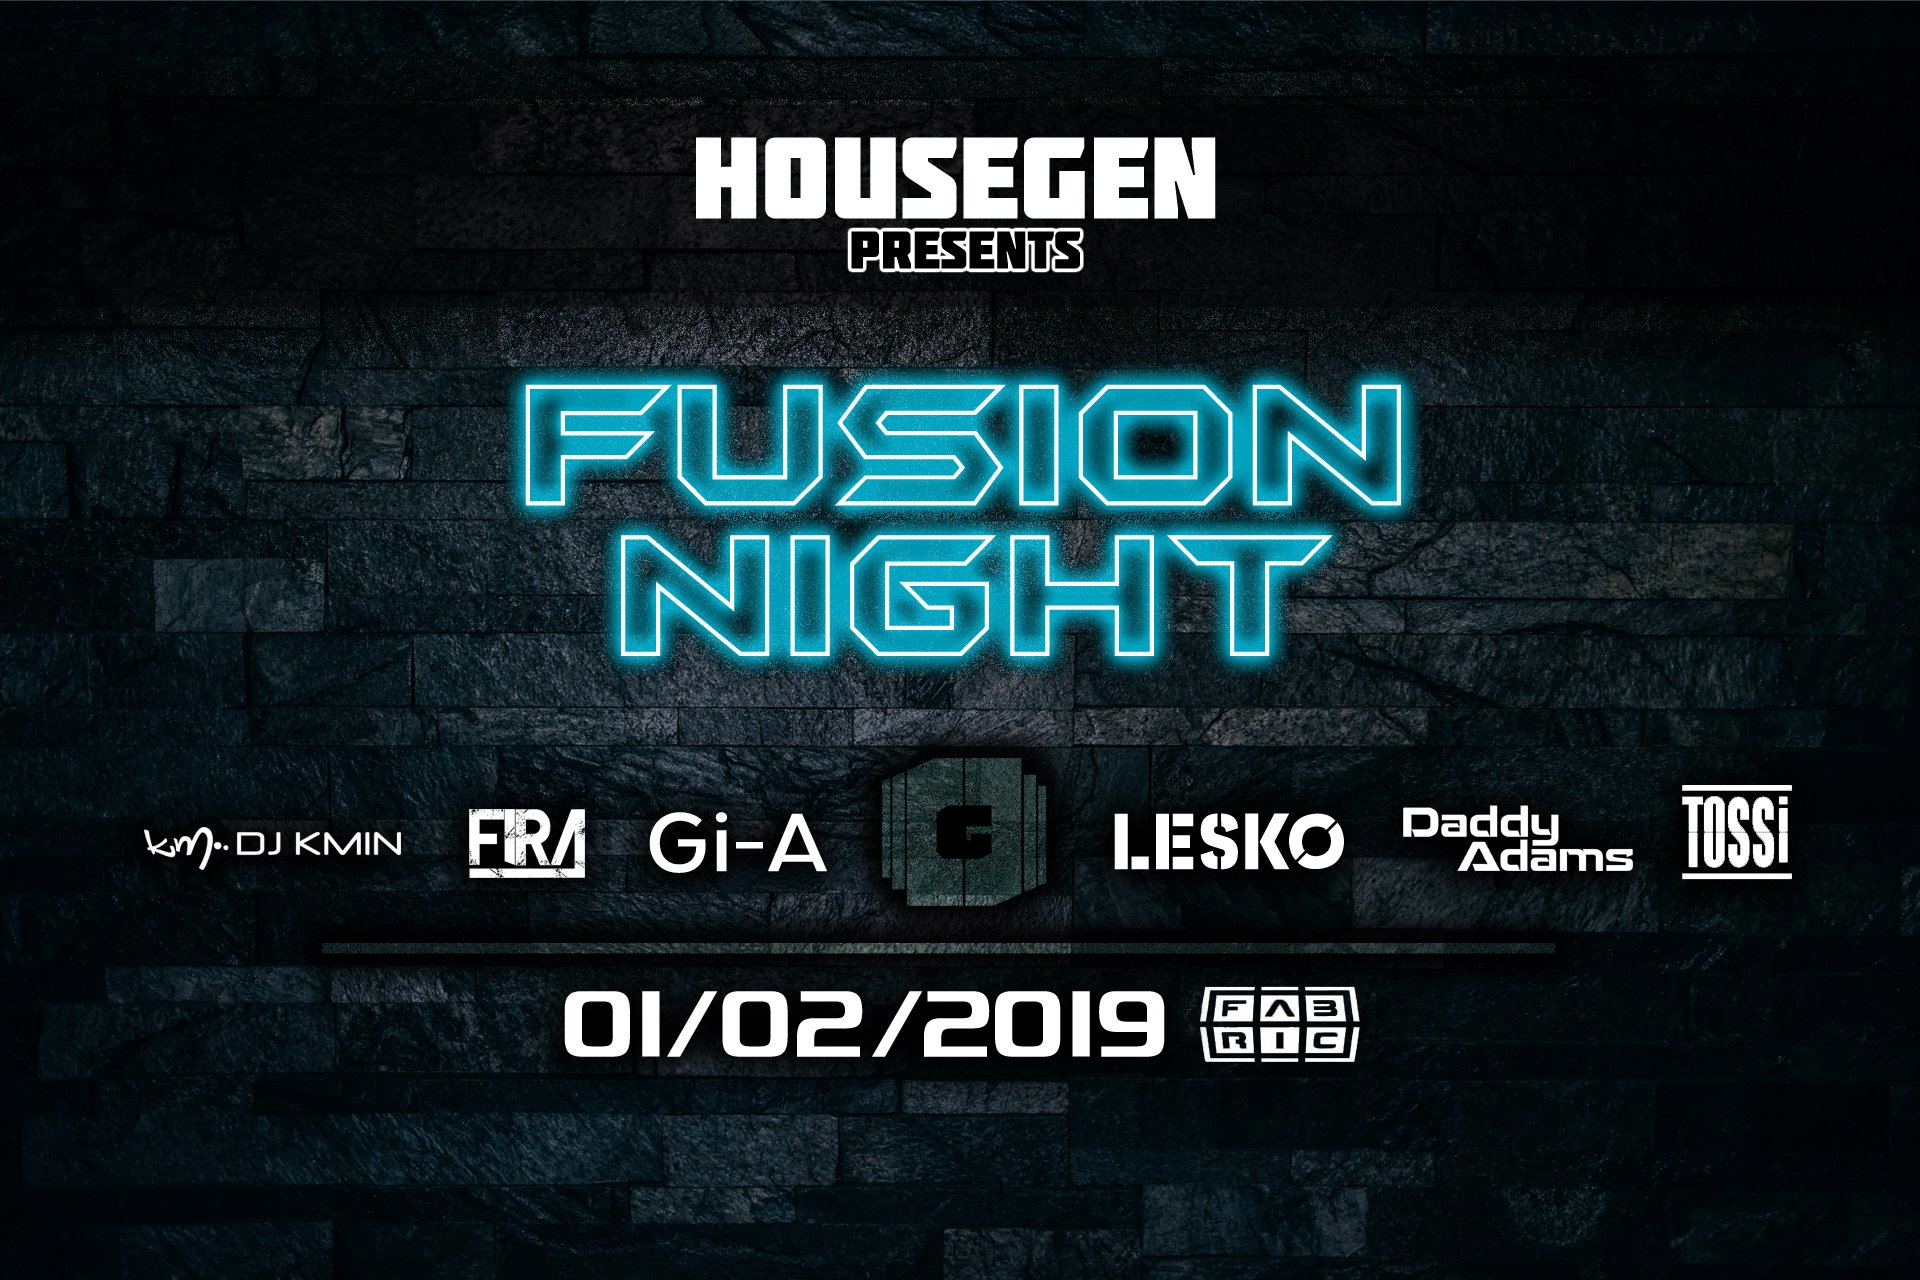 HouseGen: Fusion NIght